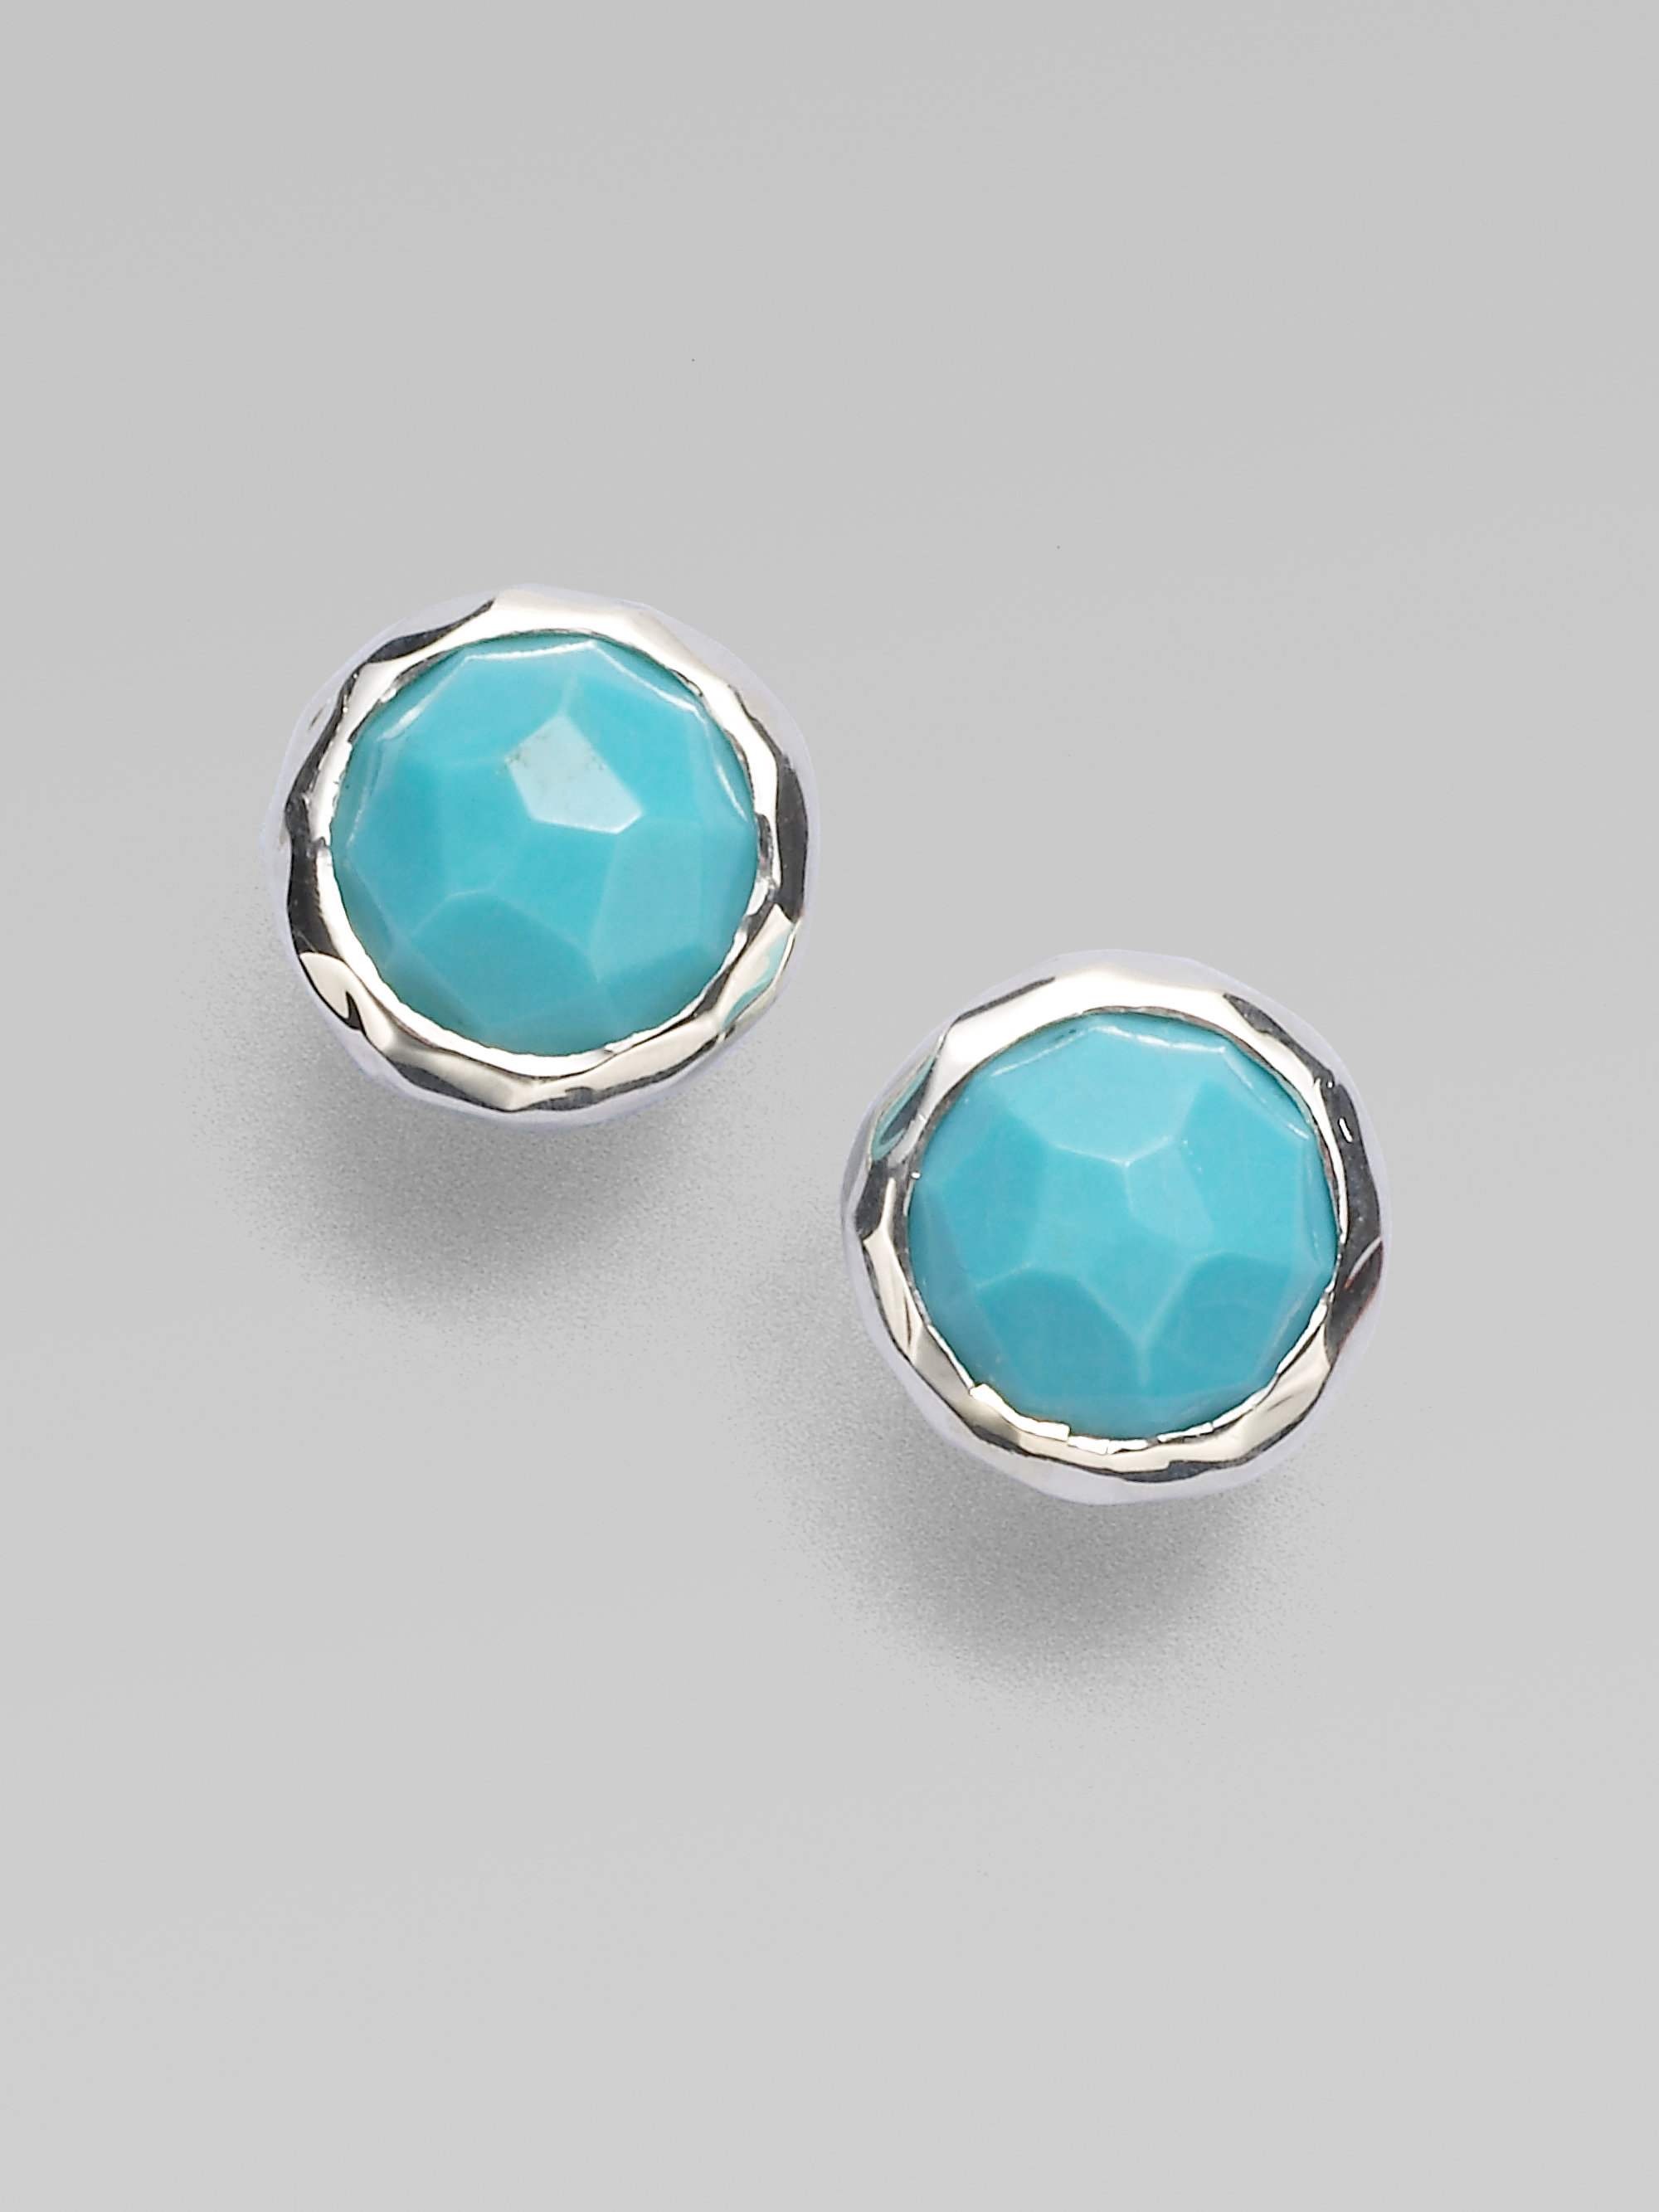 marcia earrings retail stud products moran crystal dsc discounts earring designer turquoise